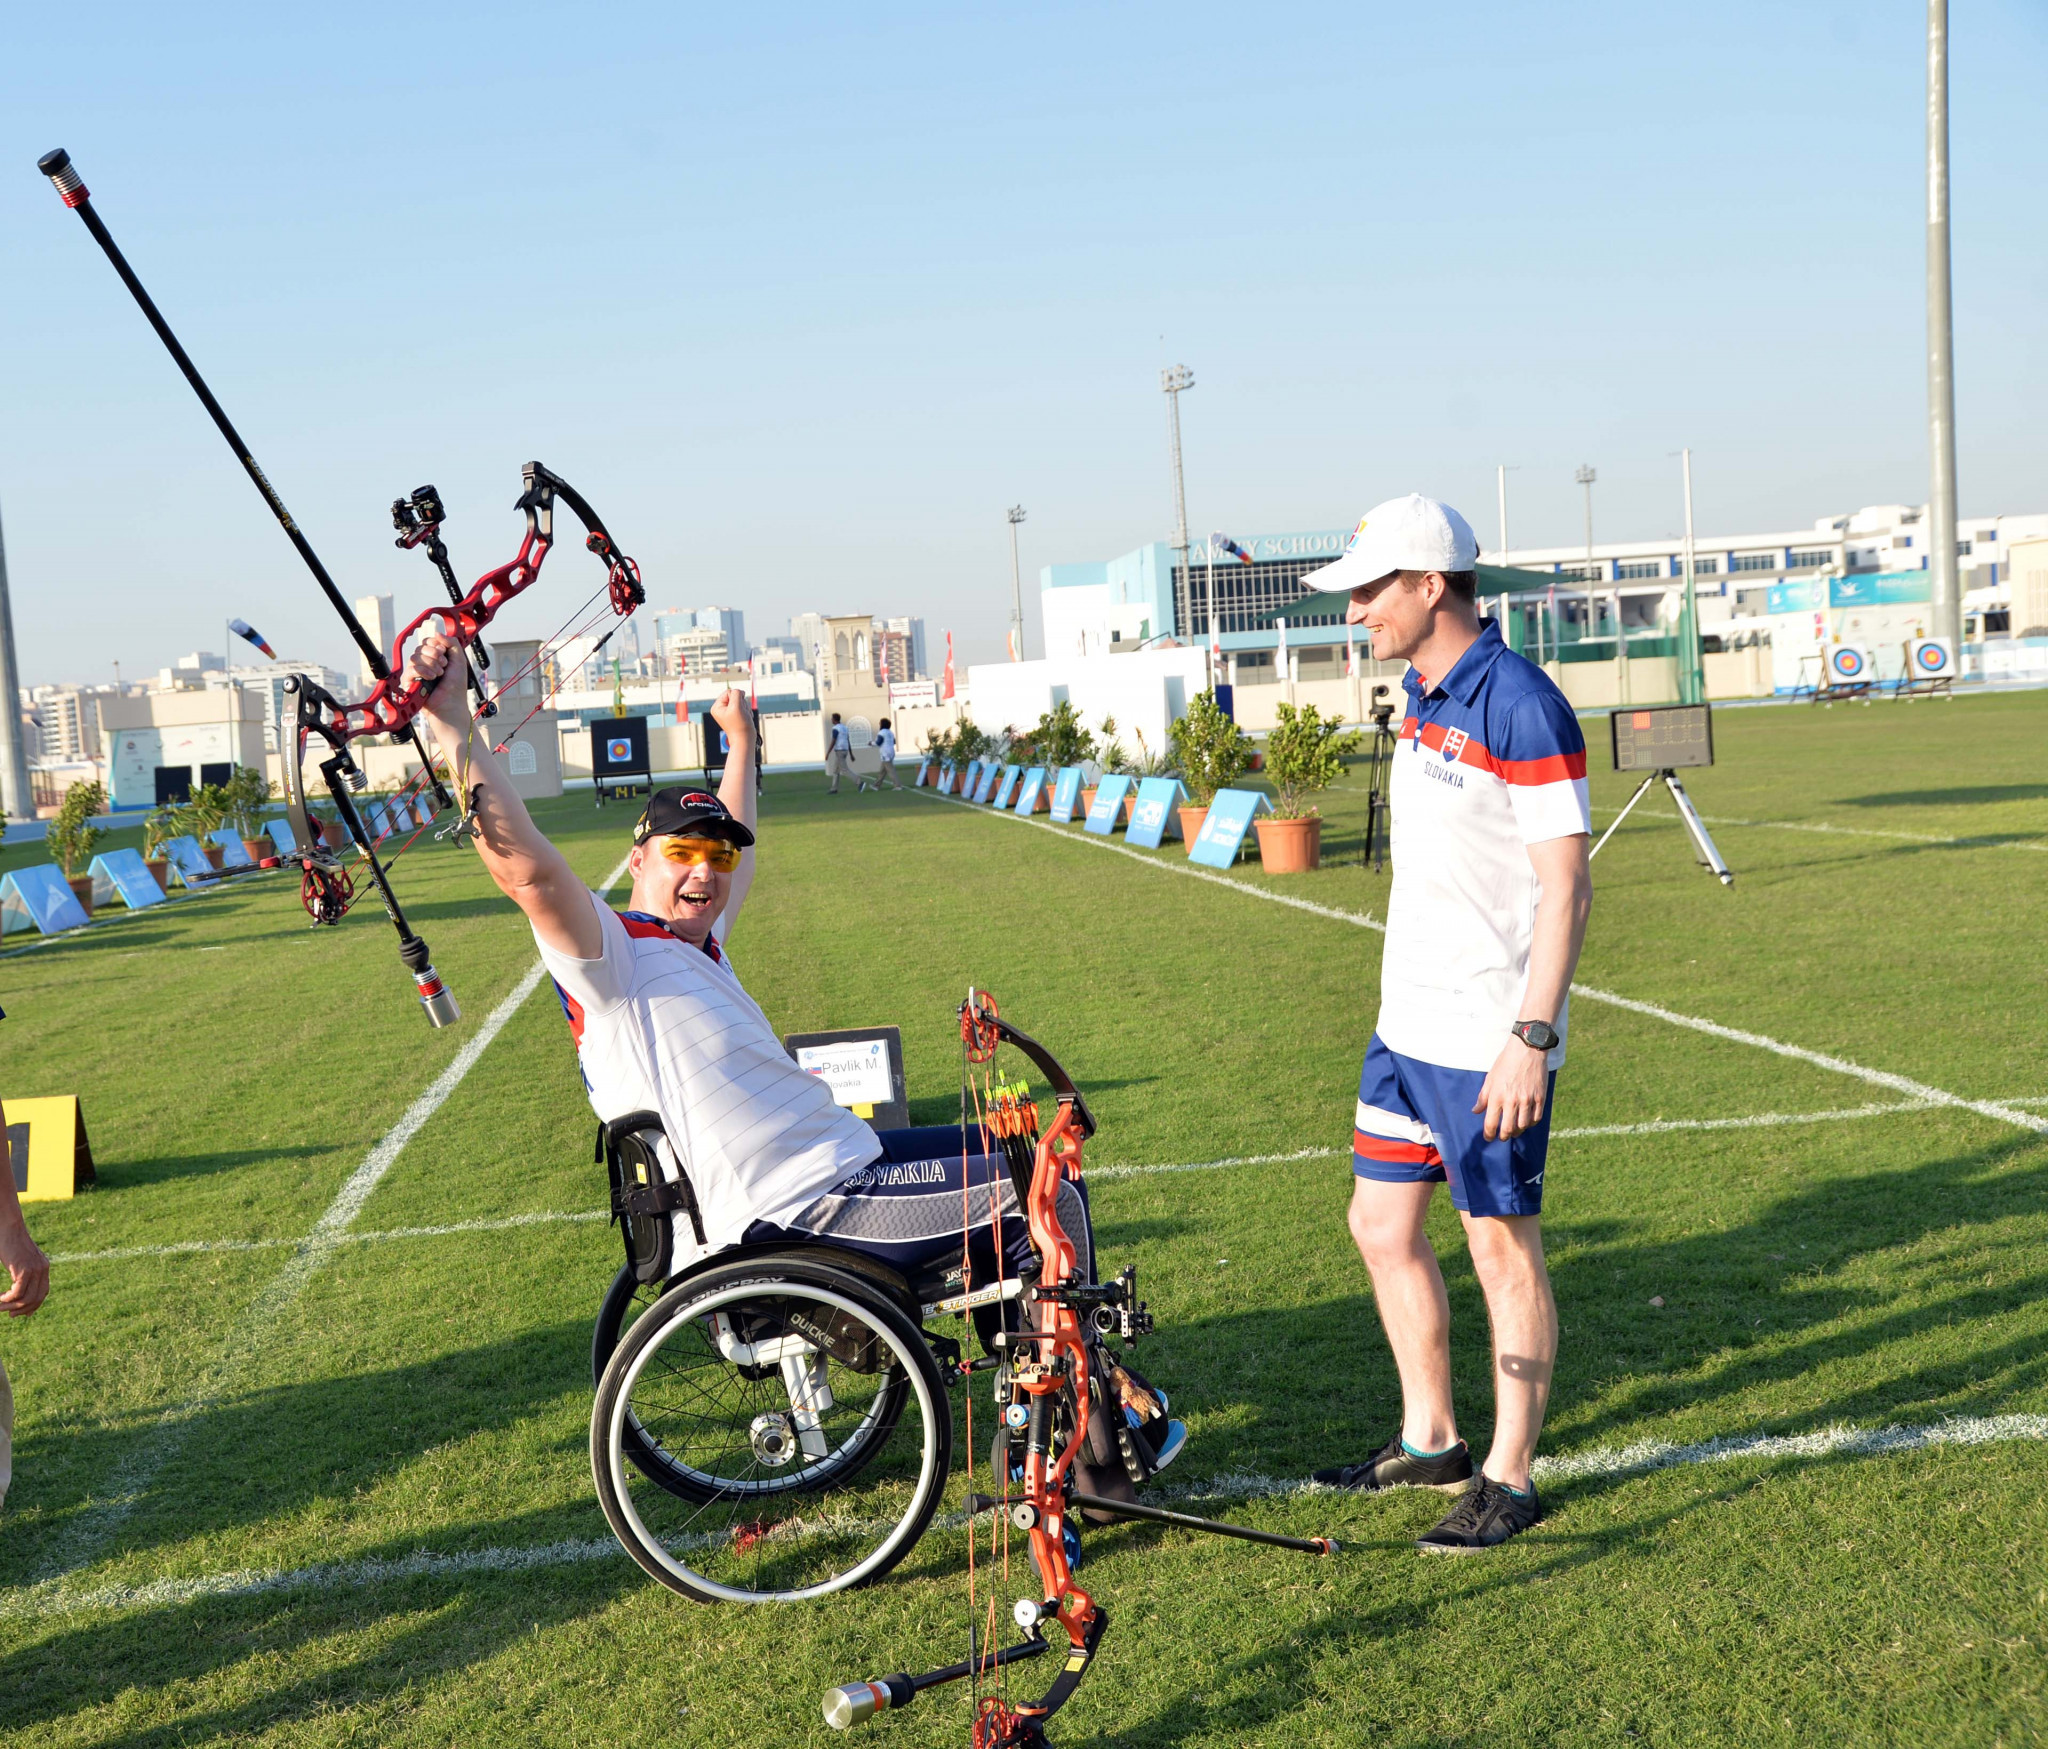 Slovakia's Marcel Pavlik earned gold in the compound men's open at the Fazza Para-archery world rankings tournament ©Asian Paralympic Committee